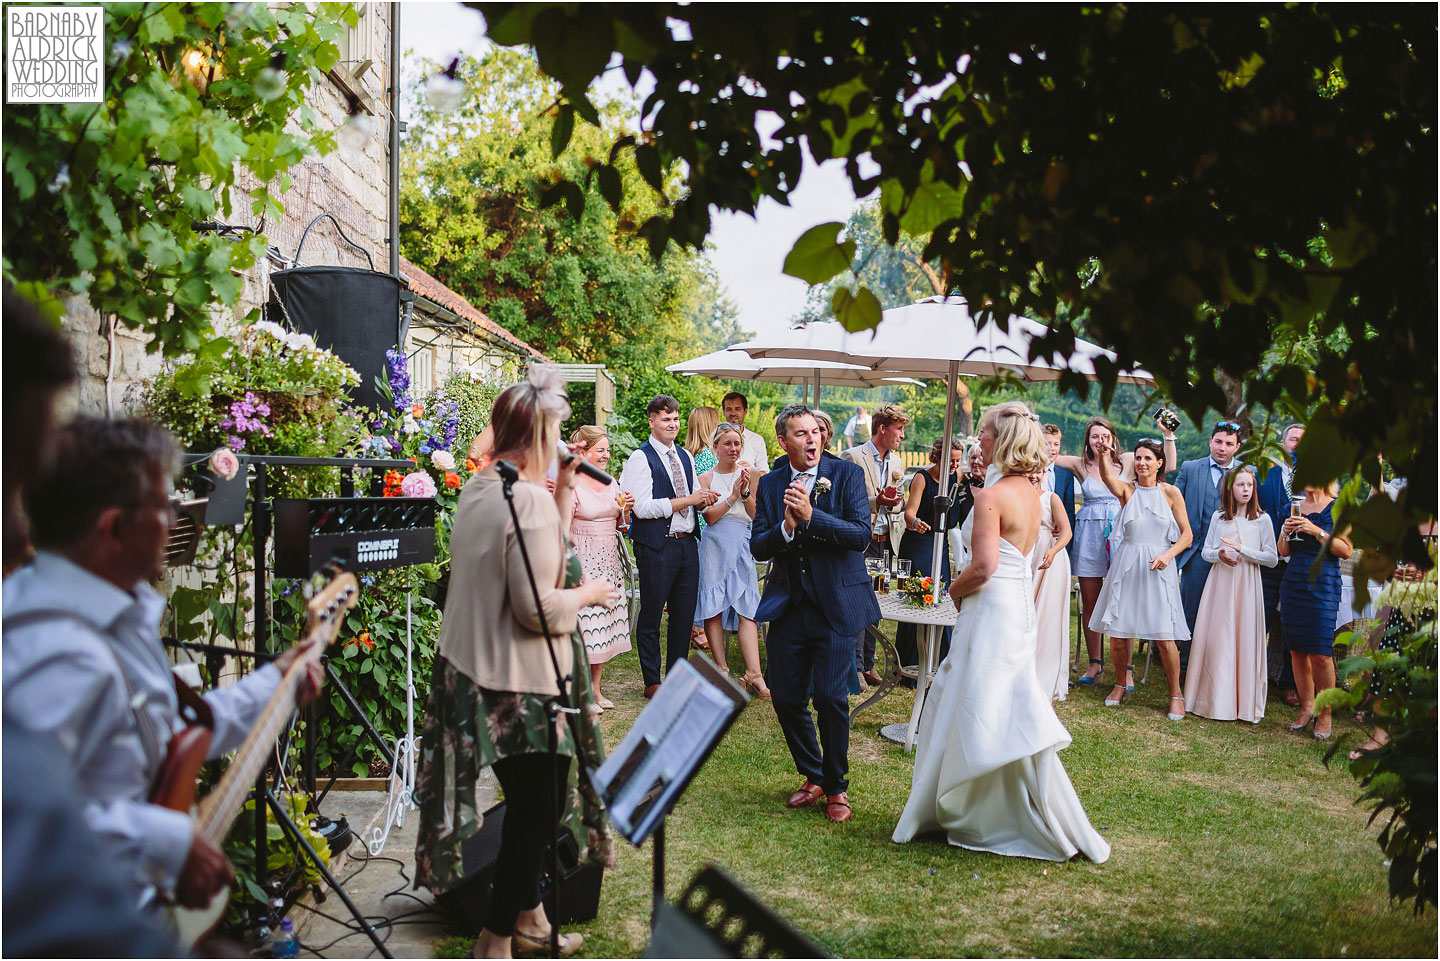 Outdoor evening first dance at The Pheasant in Harome near Helmsley, Amazing Yorkshire Wedding Photos, Best Yorkshire Wedding Photos 2018